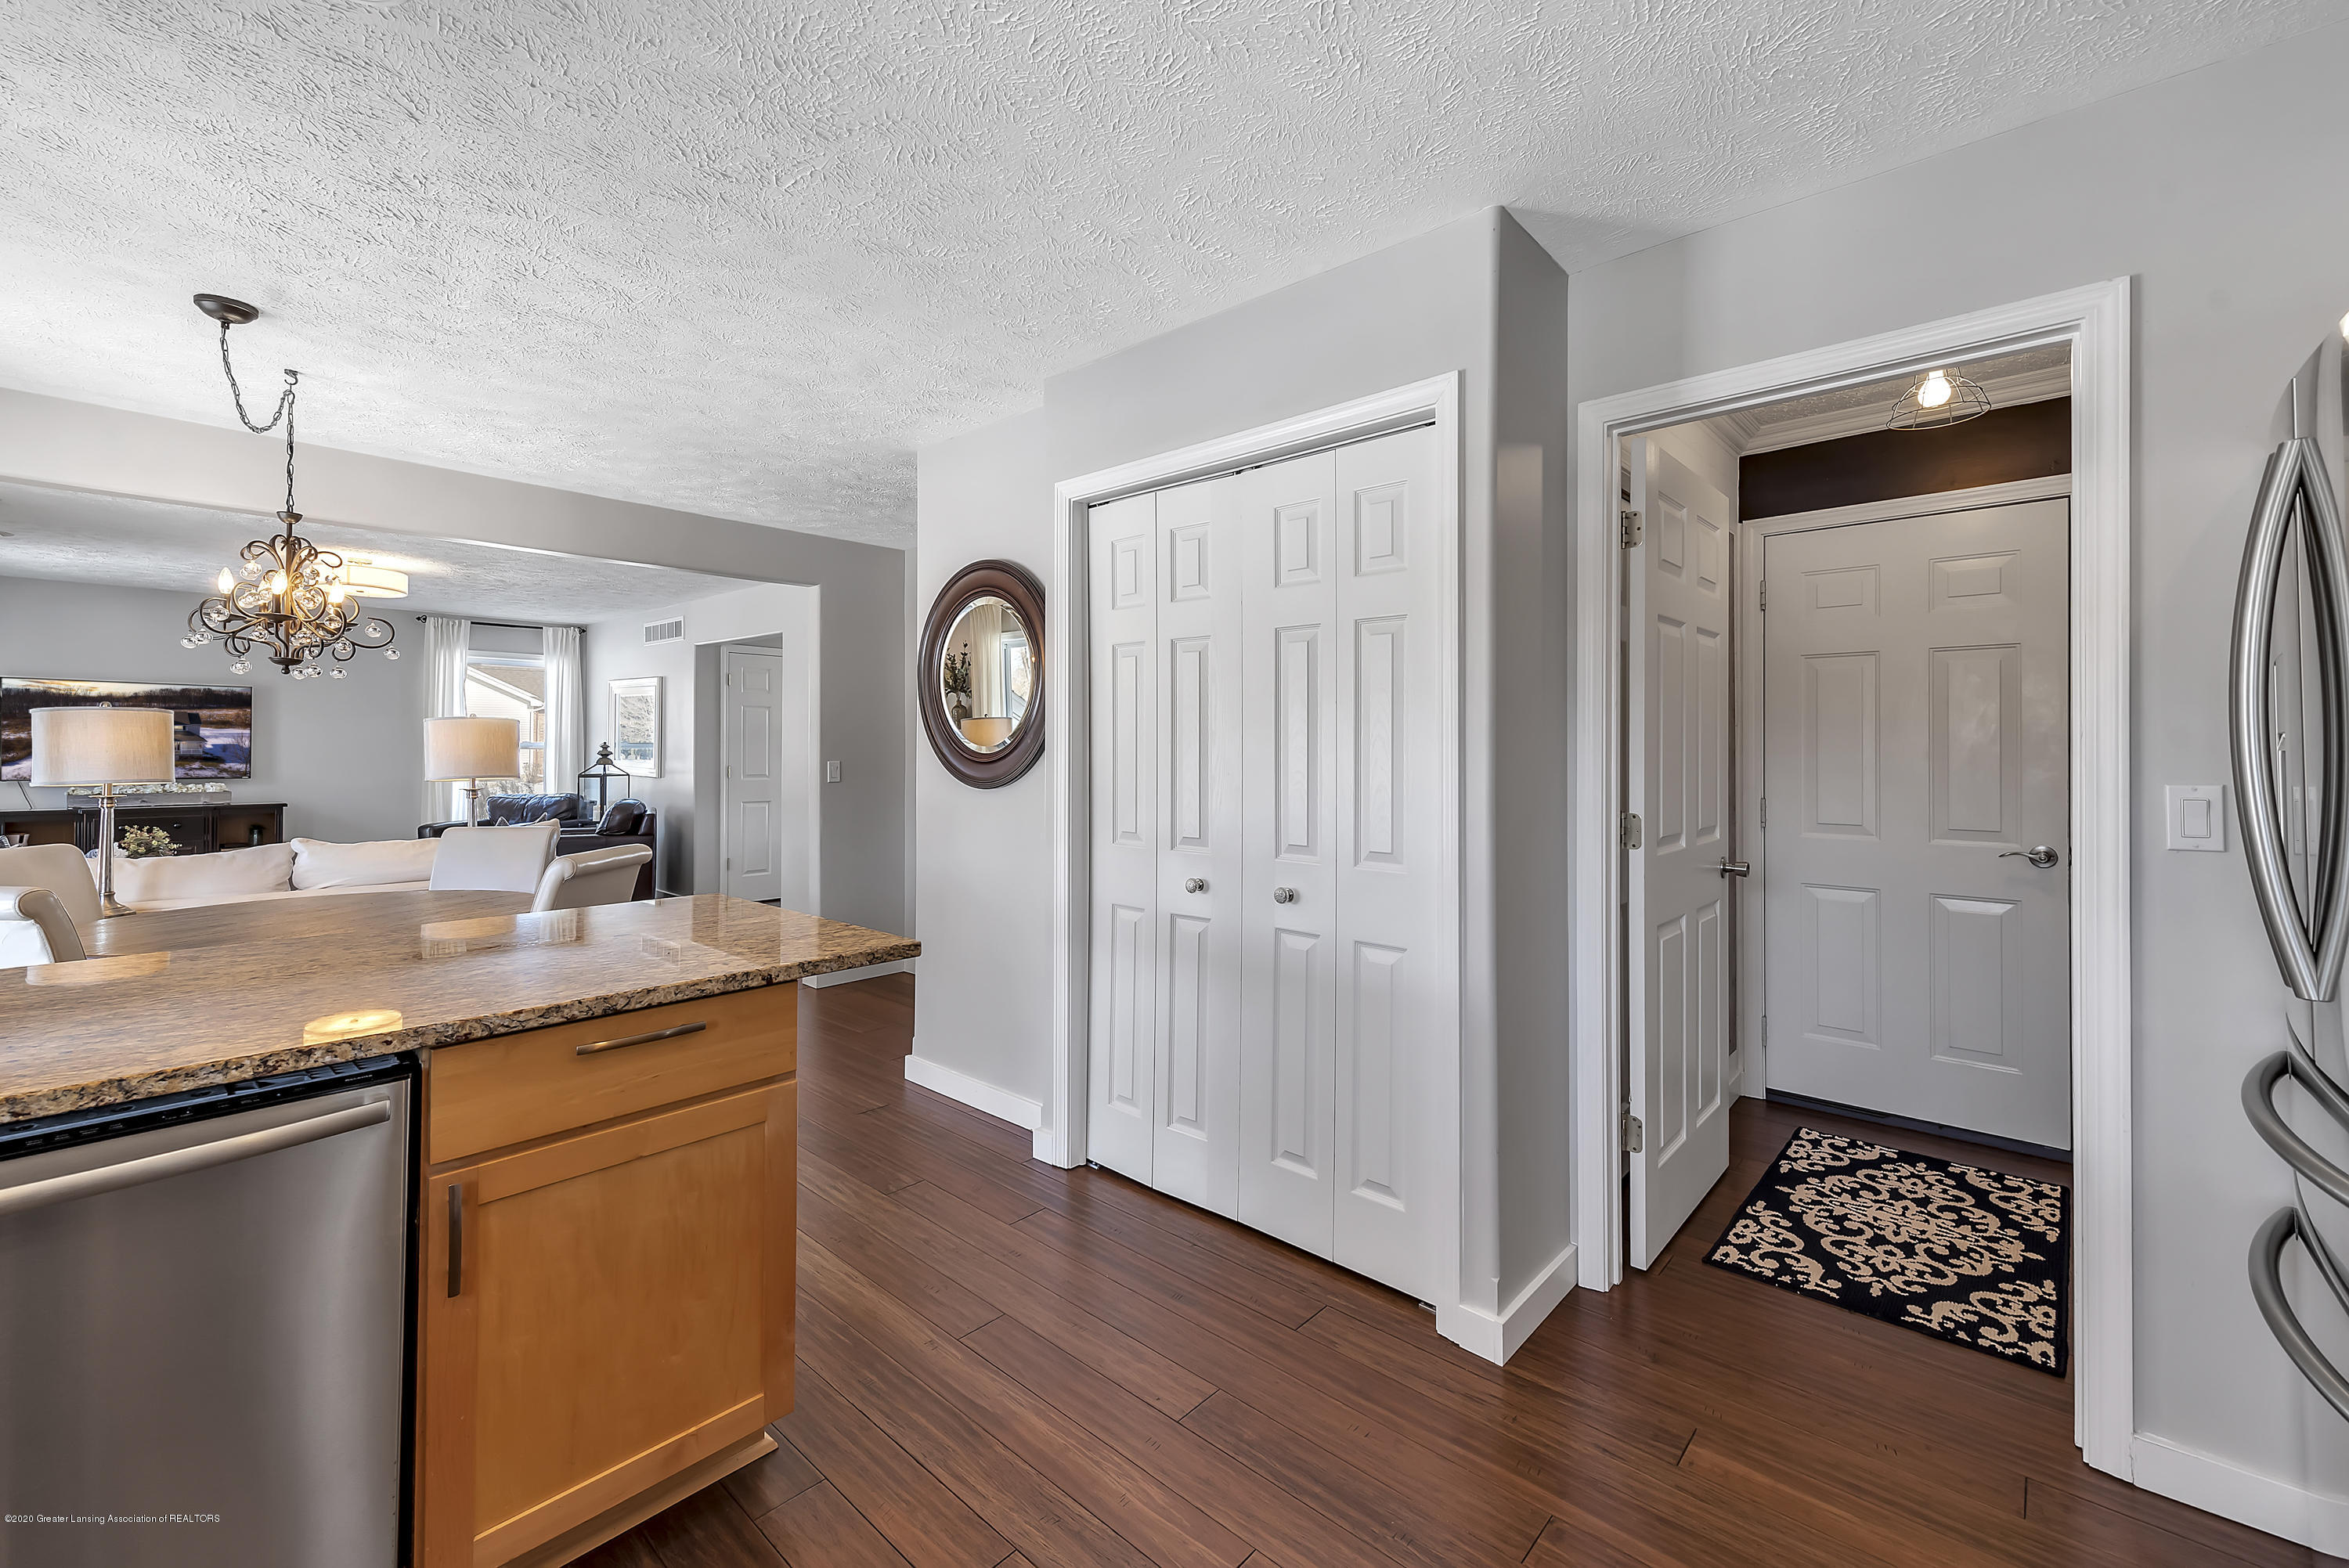 5206 Witherspoon Way - 5206-Witherspoon-Way-WindowStill-Real-Es - 20